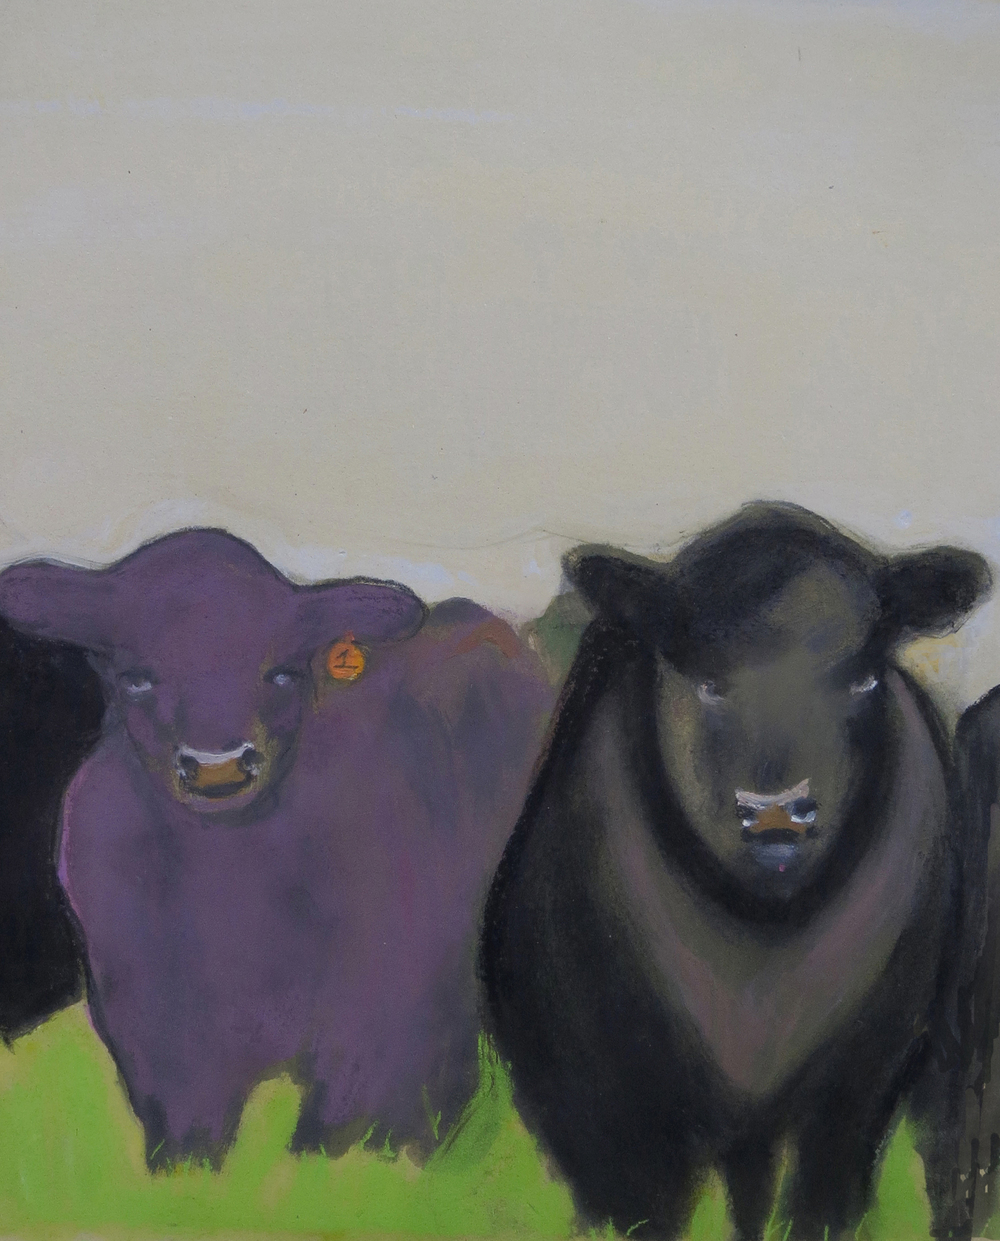 Purple Cow-Black Bull by Susanne Vincent